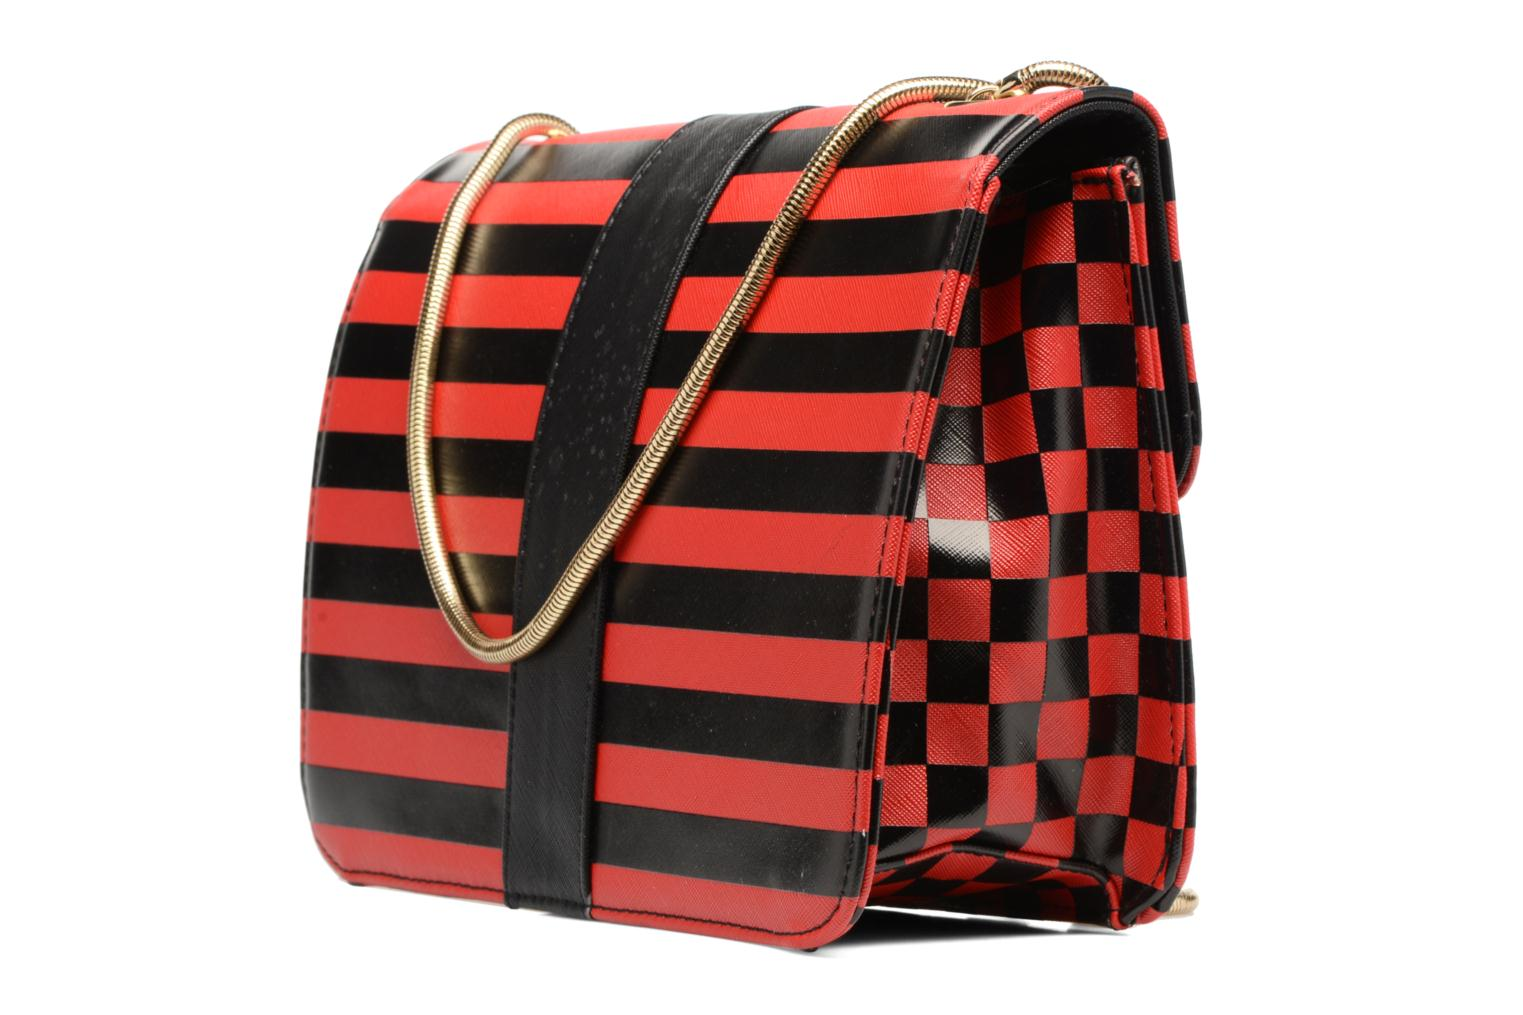 CATY L rouge L'Aetelier Shoulder Carreaux Caesars noir bag OIwwq5Y